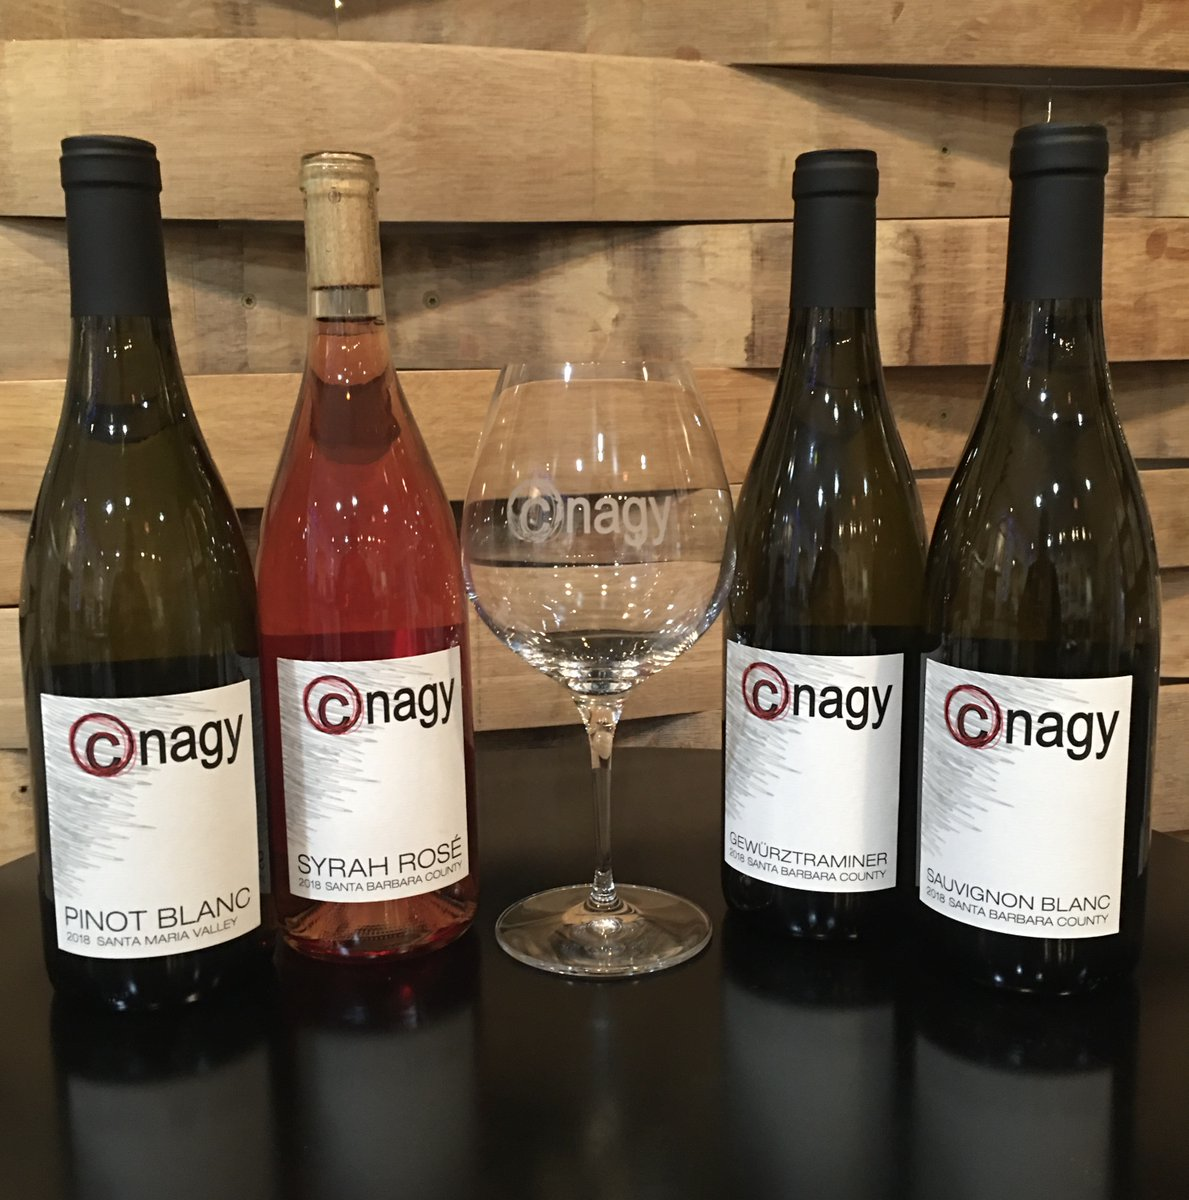 Join us this month for a special bottle pricing in honor of Restaurant month. Purchase any of the following wines for $20.20 in the month of January 2018 Bien Nacido Pinot Blanc 2018 Portico Hills Sauvignon Blanc 2018 Alisos Gewürztraminer 2018 Syrah Rosé Santé https://t.co/J22ogFrtvq